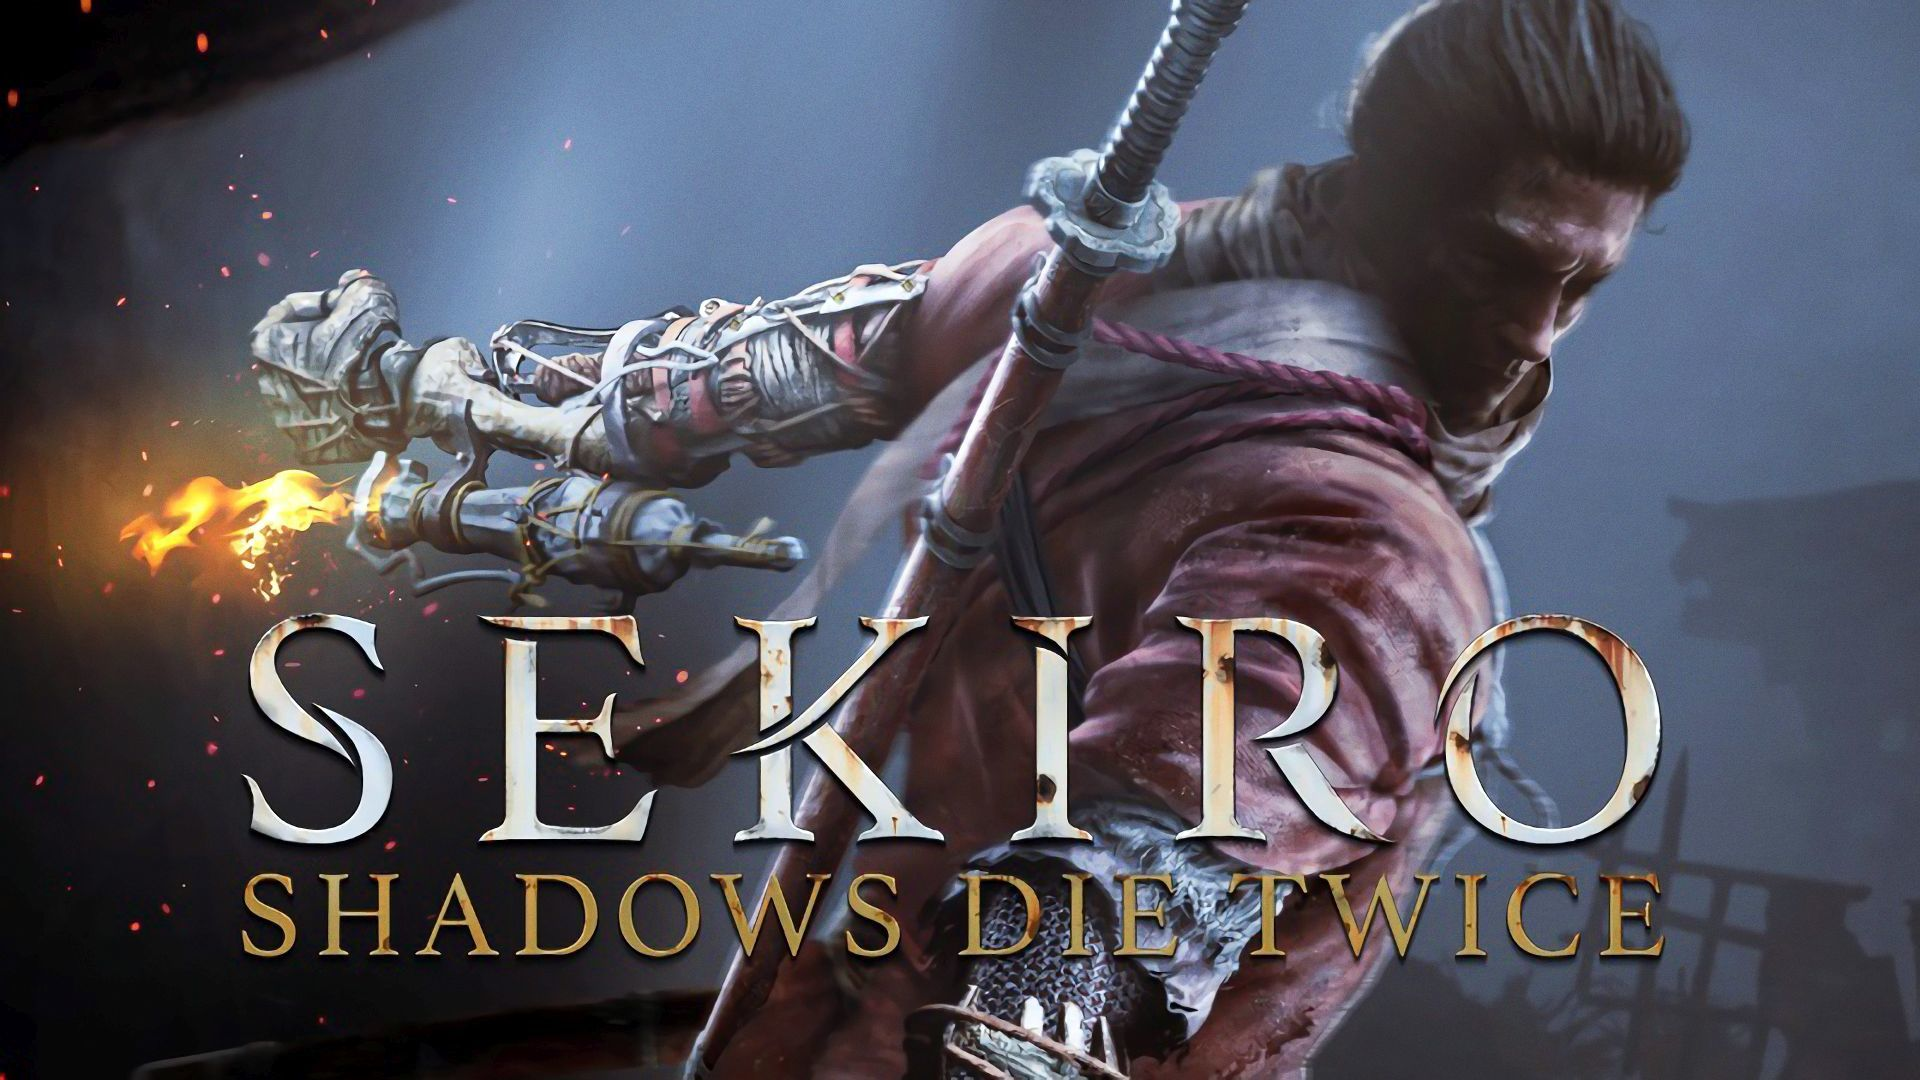 Sekiro Shadows Die Twice , HD Wallpaper & Backgrounds